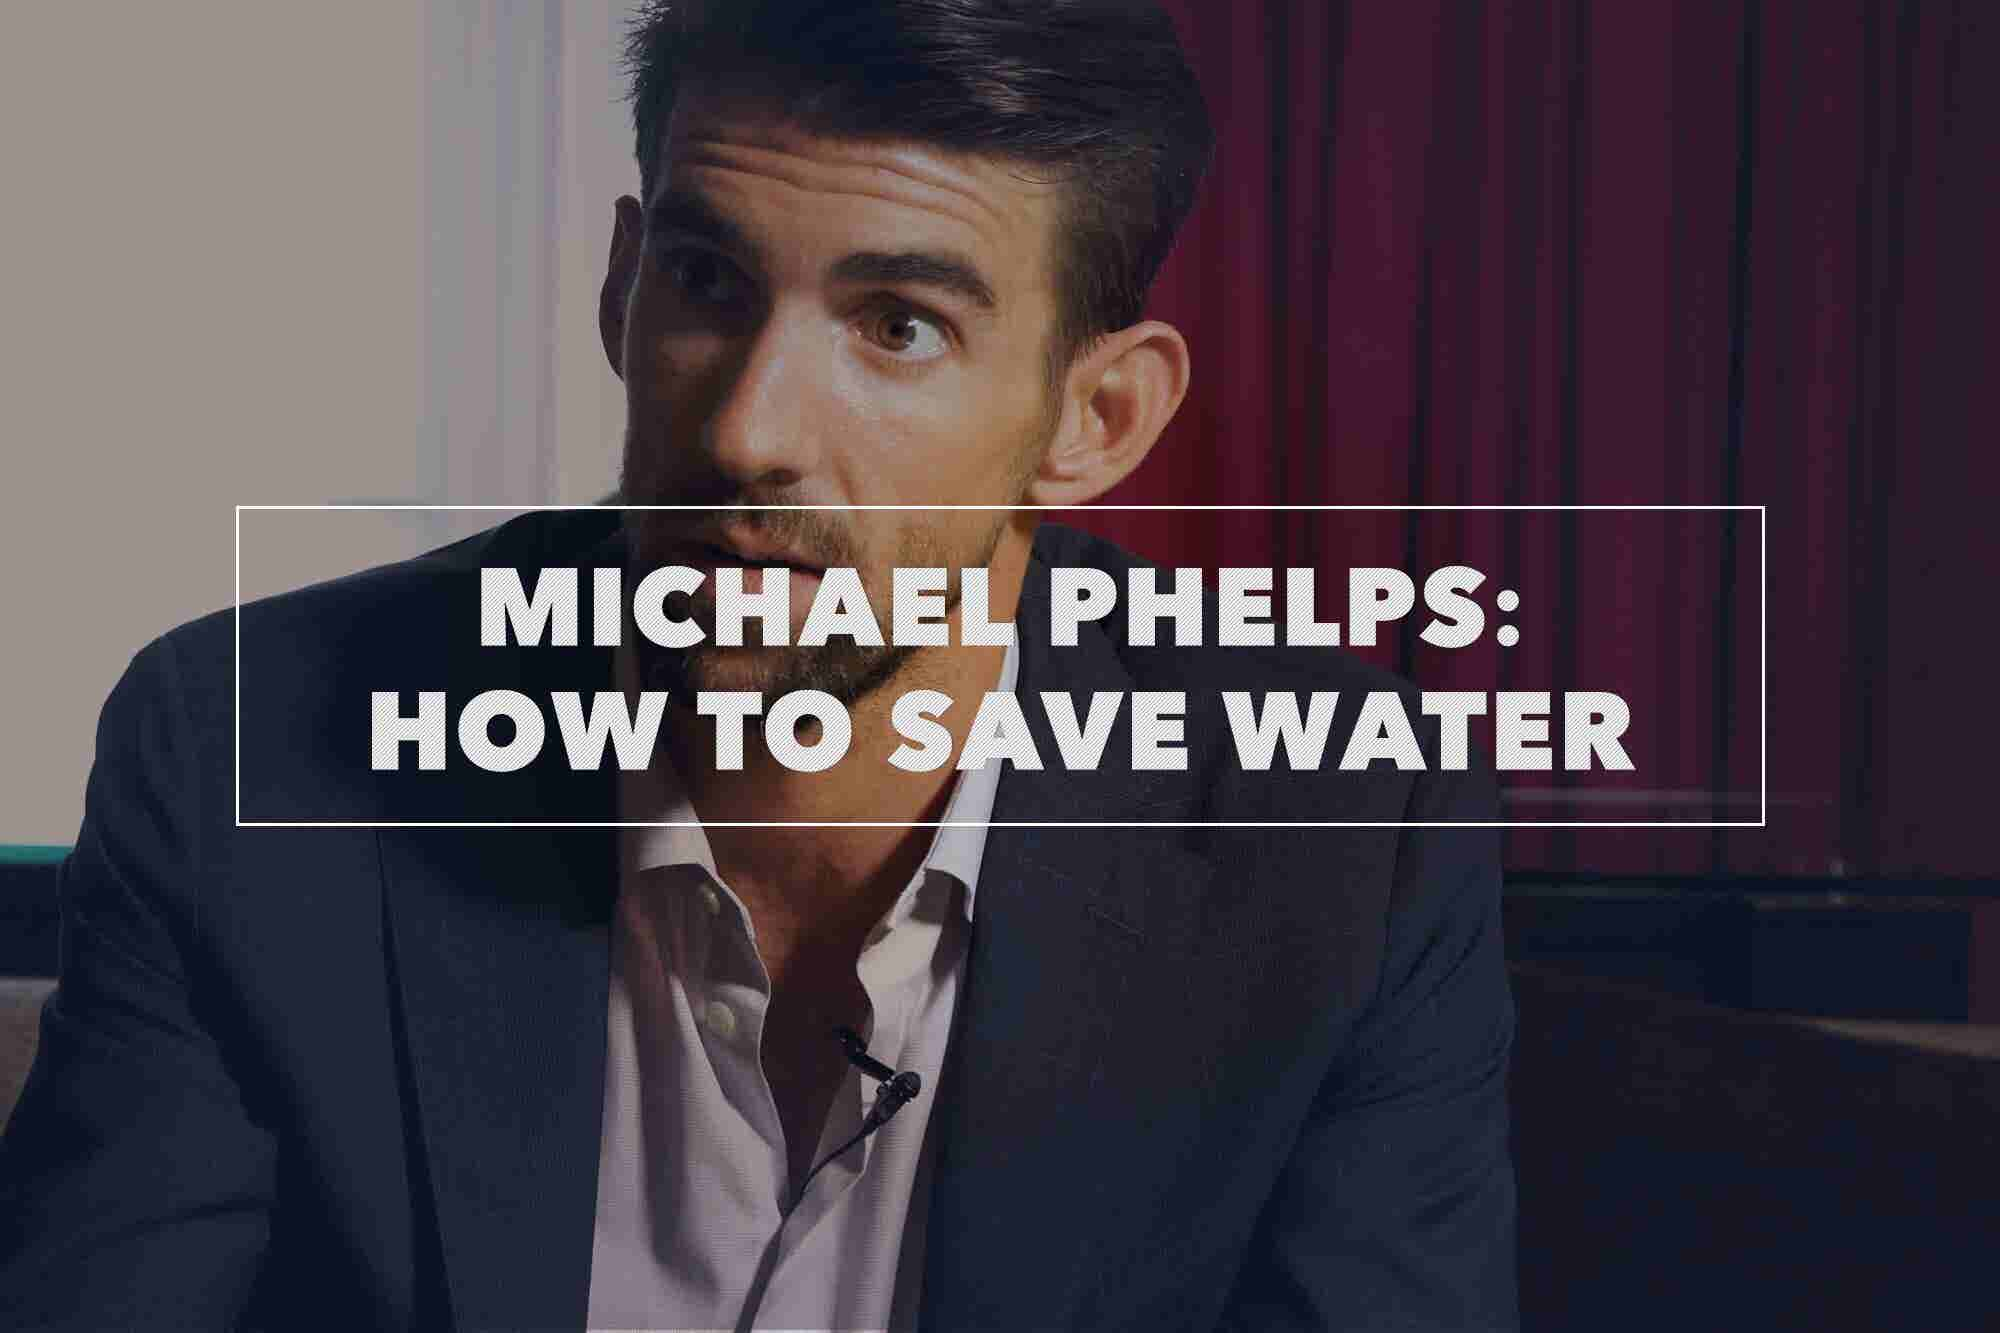 Olympic Superstar Michael Phelps Won Medals in the Water. Now He's Fighting to Save It. (Video)